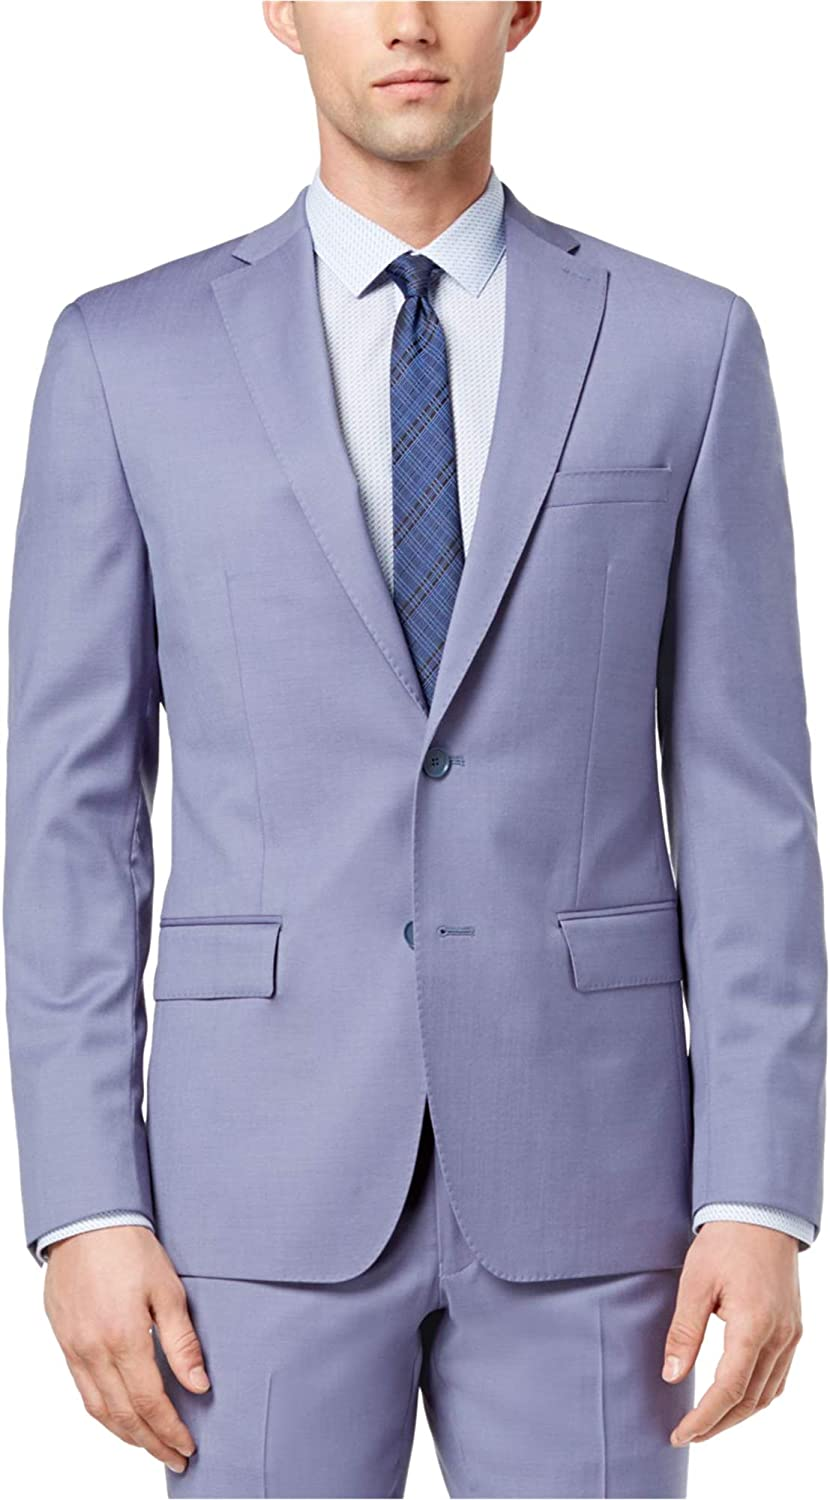 DKNY Mens Solid Color Two Button Blazer Jacket, Blue, 42 Long